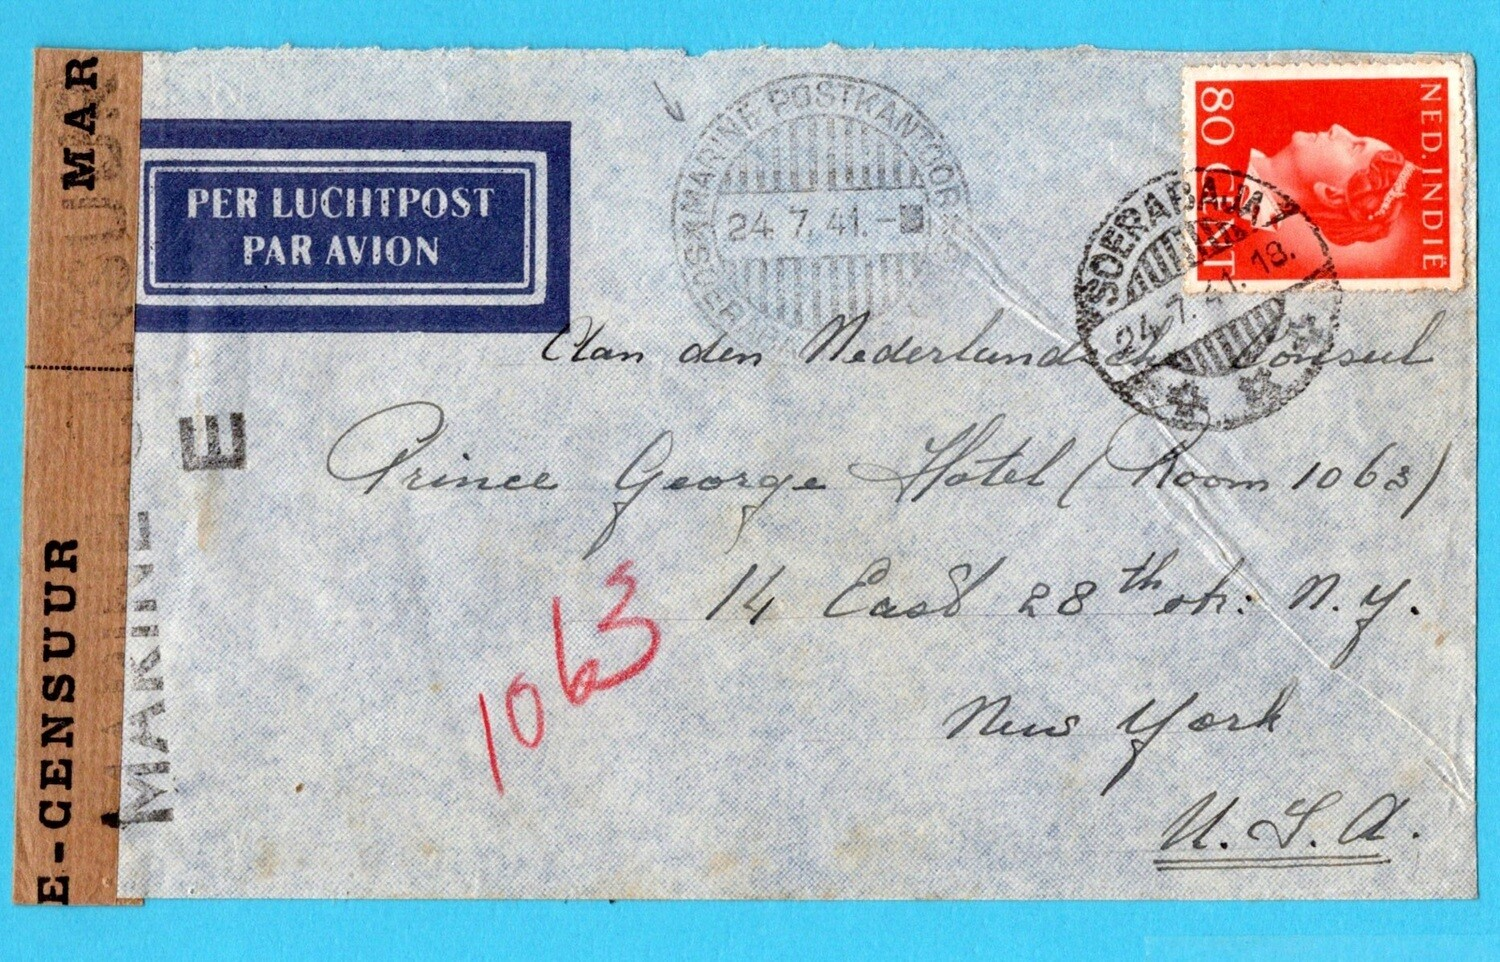 NETHERLANDS EAST INDIES censor air cover 1941 Marine post office